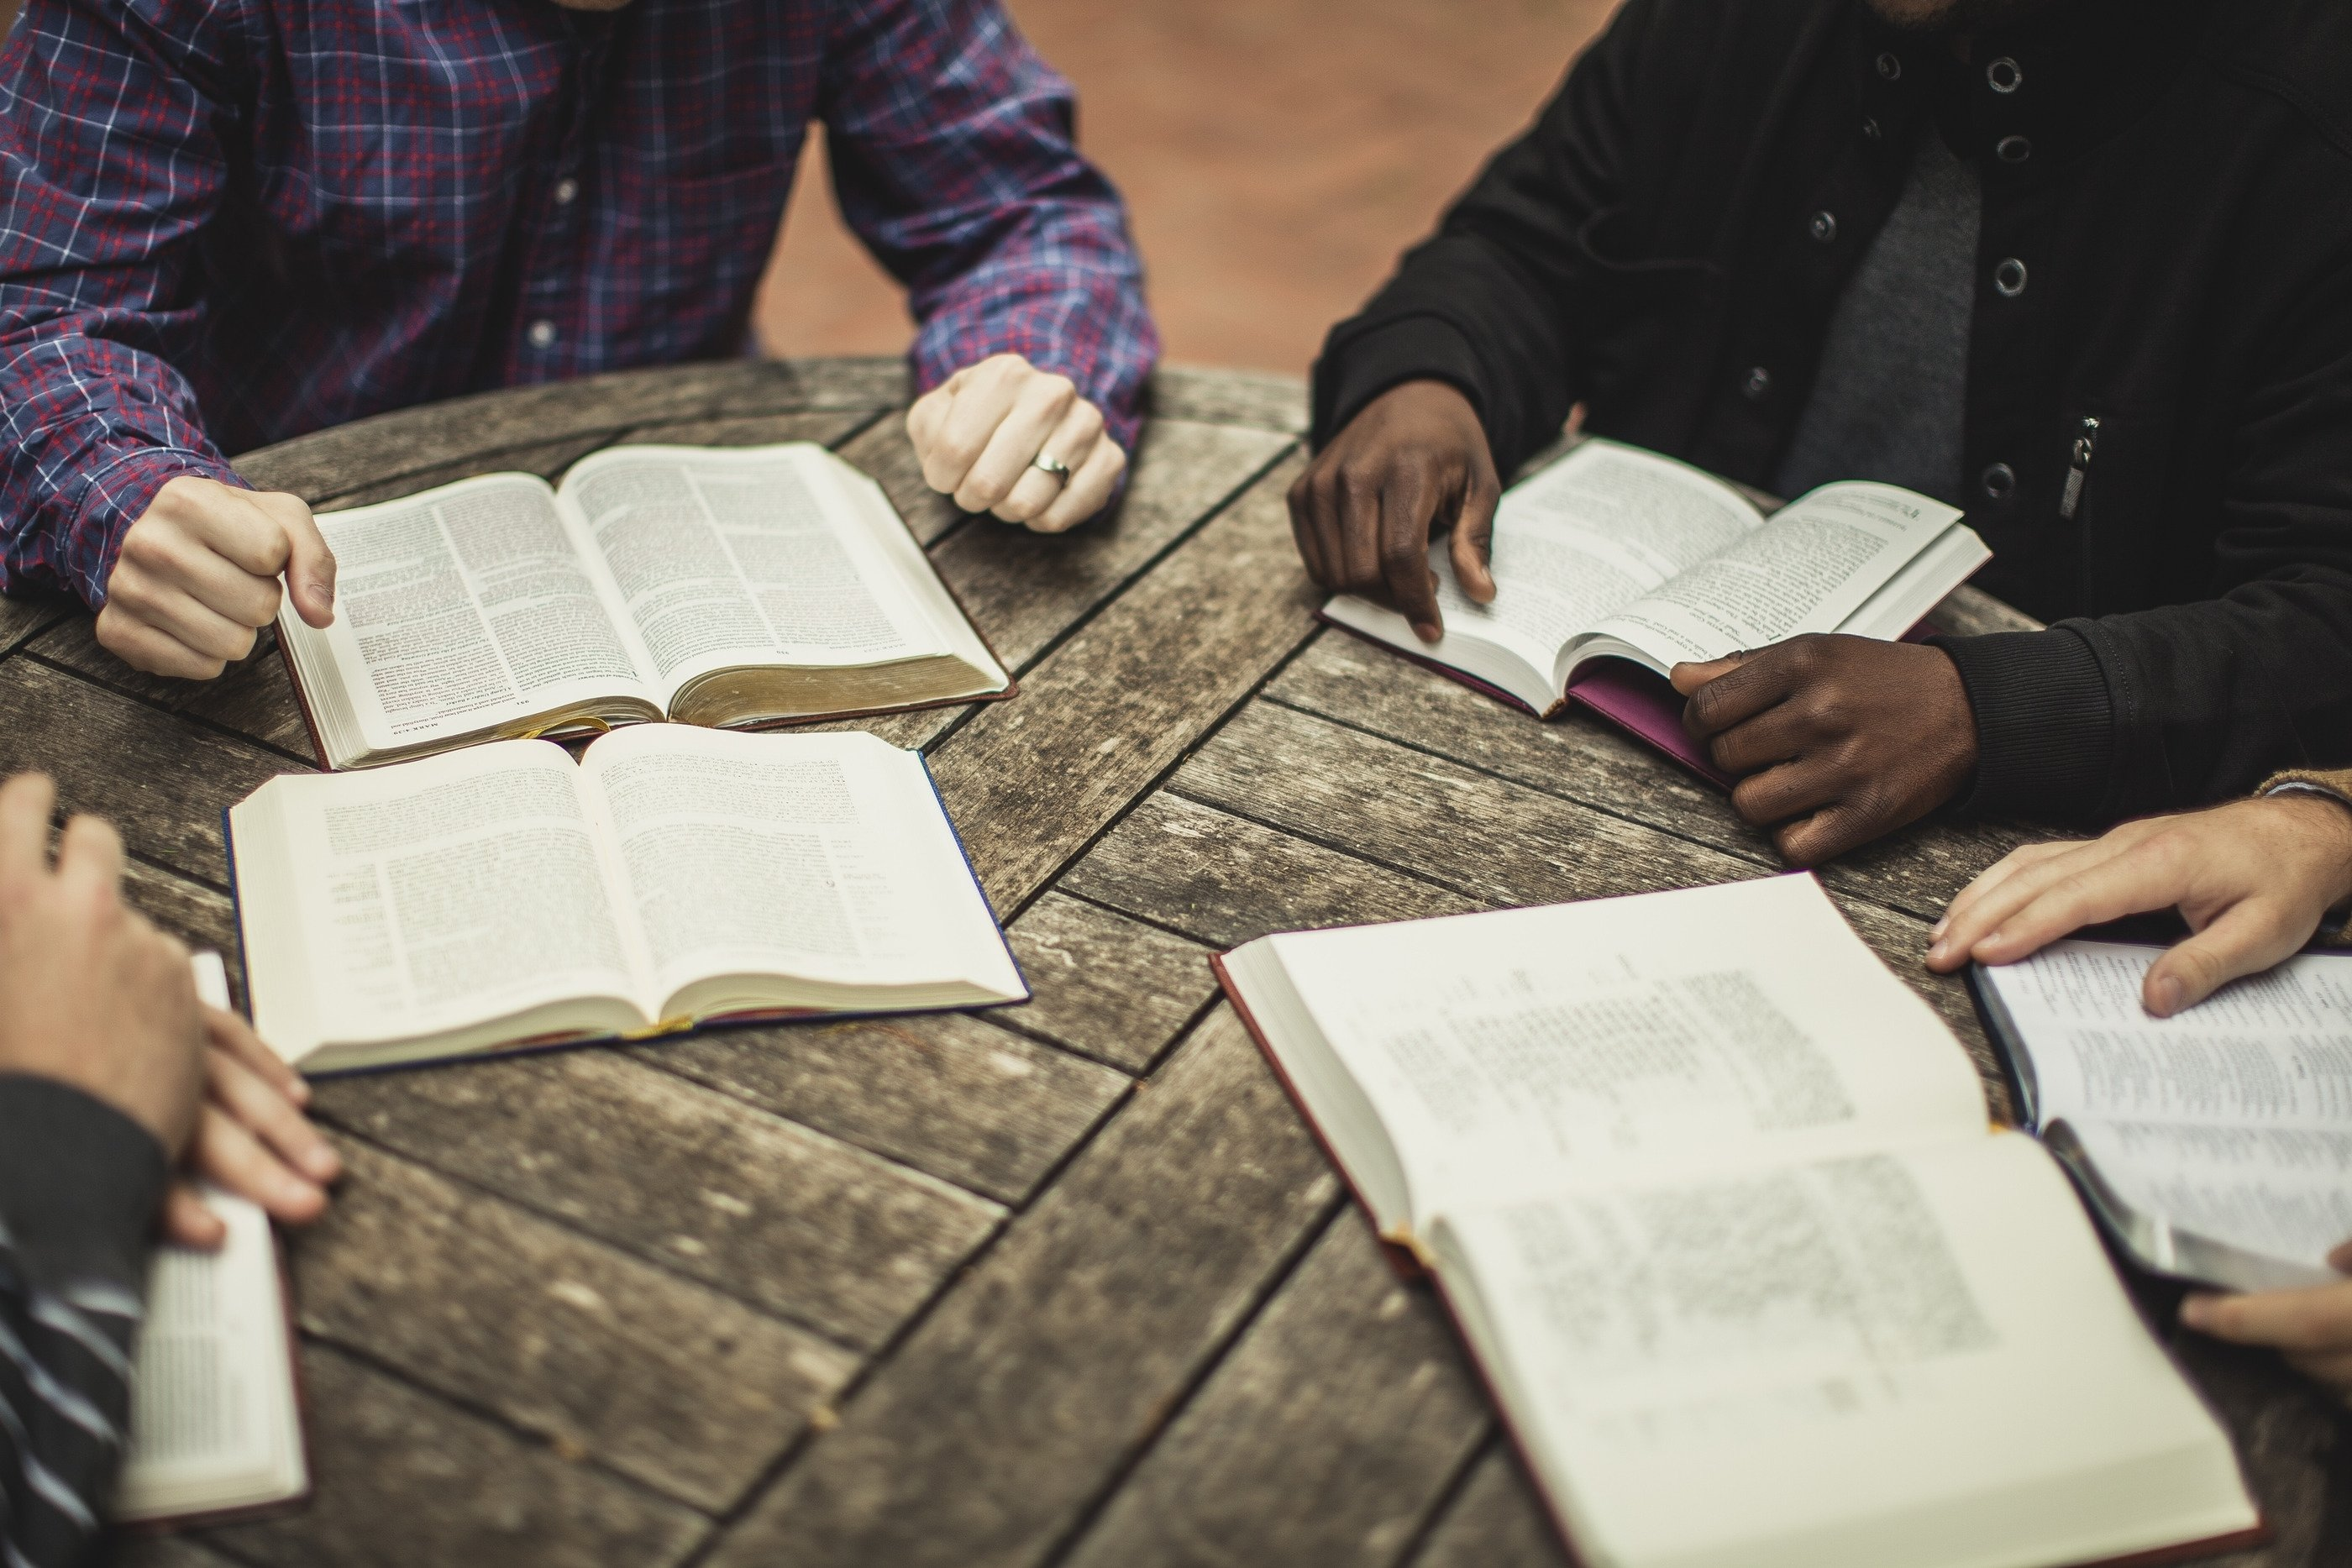 10 Awesome Small Group Bible Study Ideas the 10 fs of bible study faithlife blog 2020